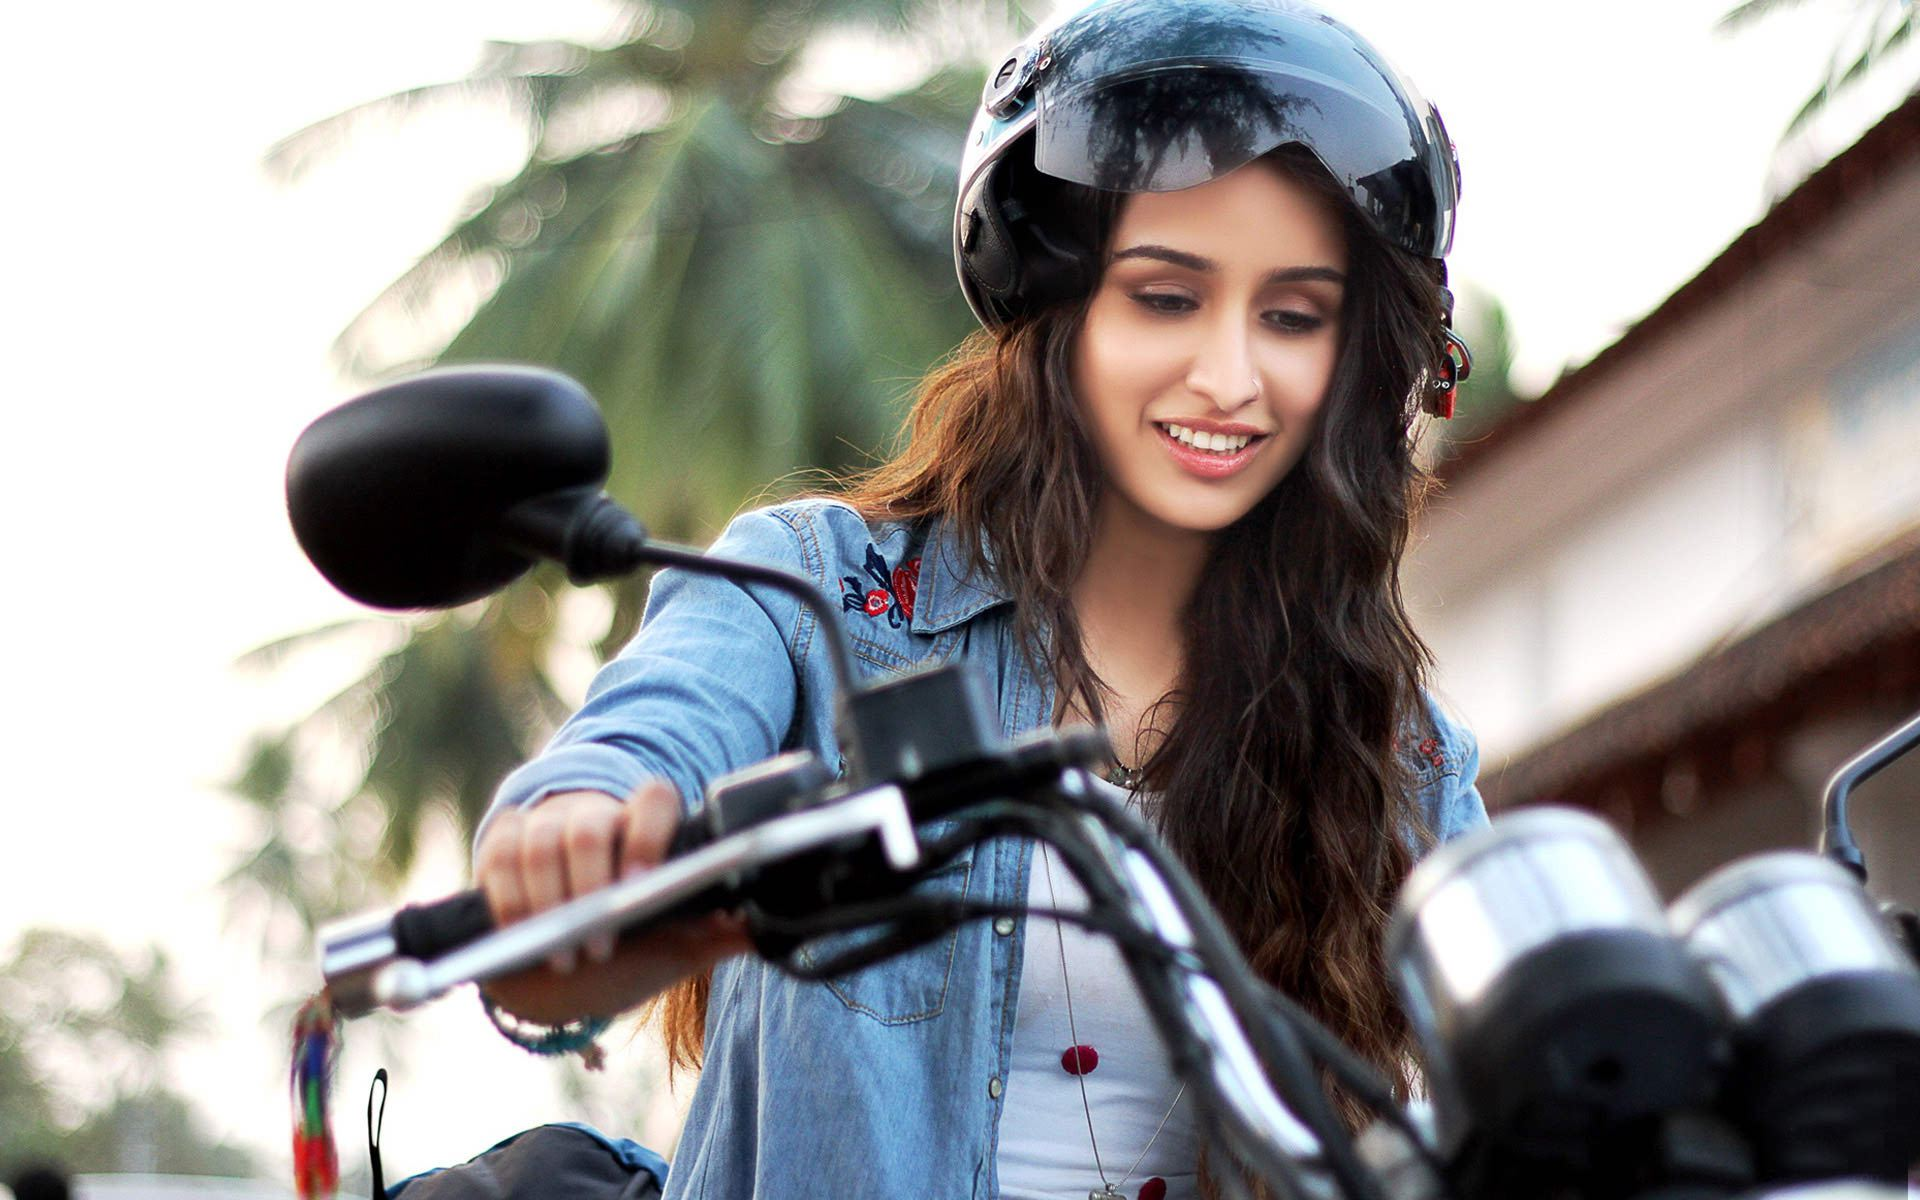 stunning shraddha kapoor with bike still background hd free desktop mobile wallpaper